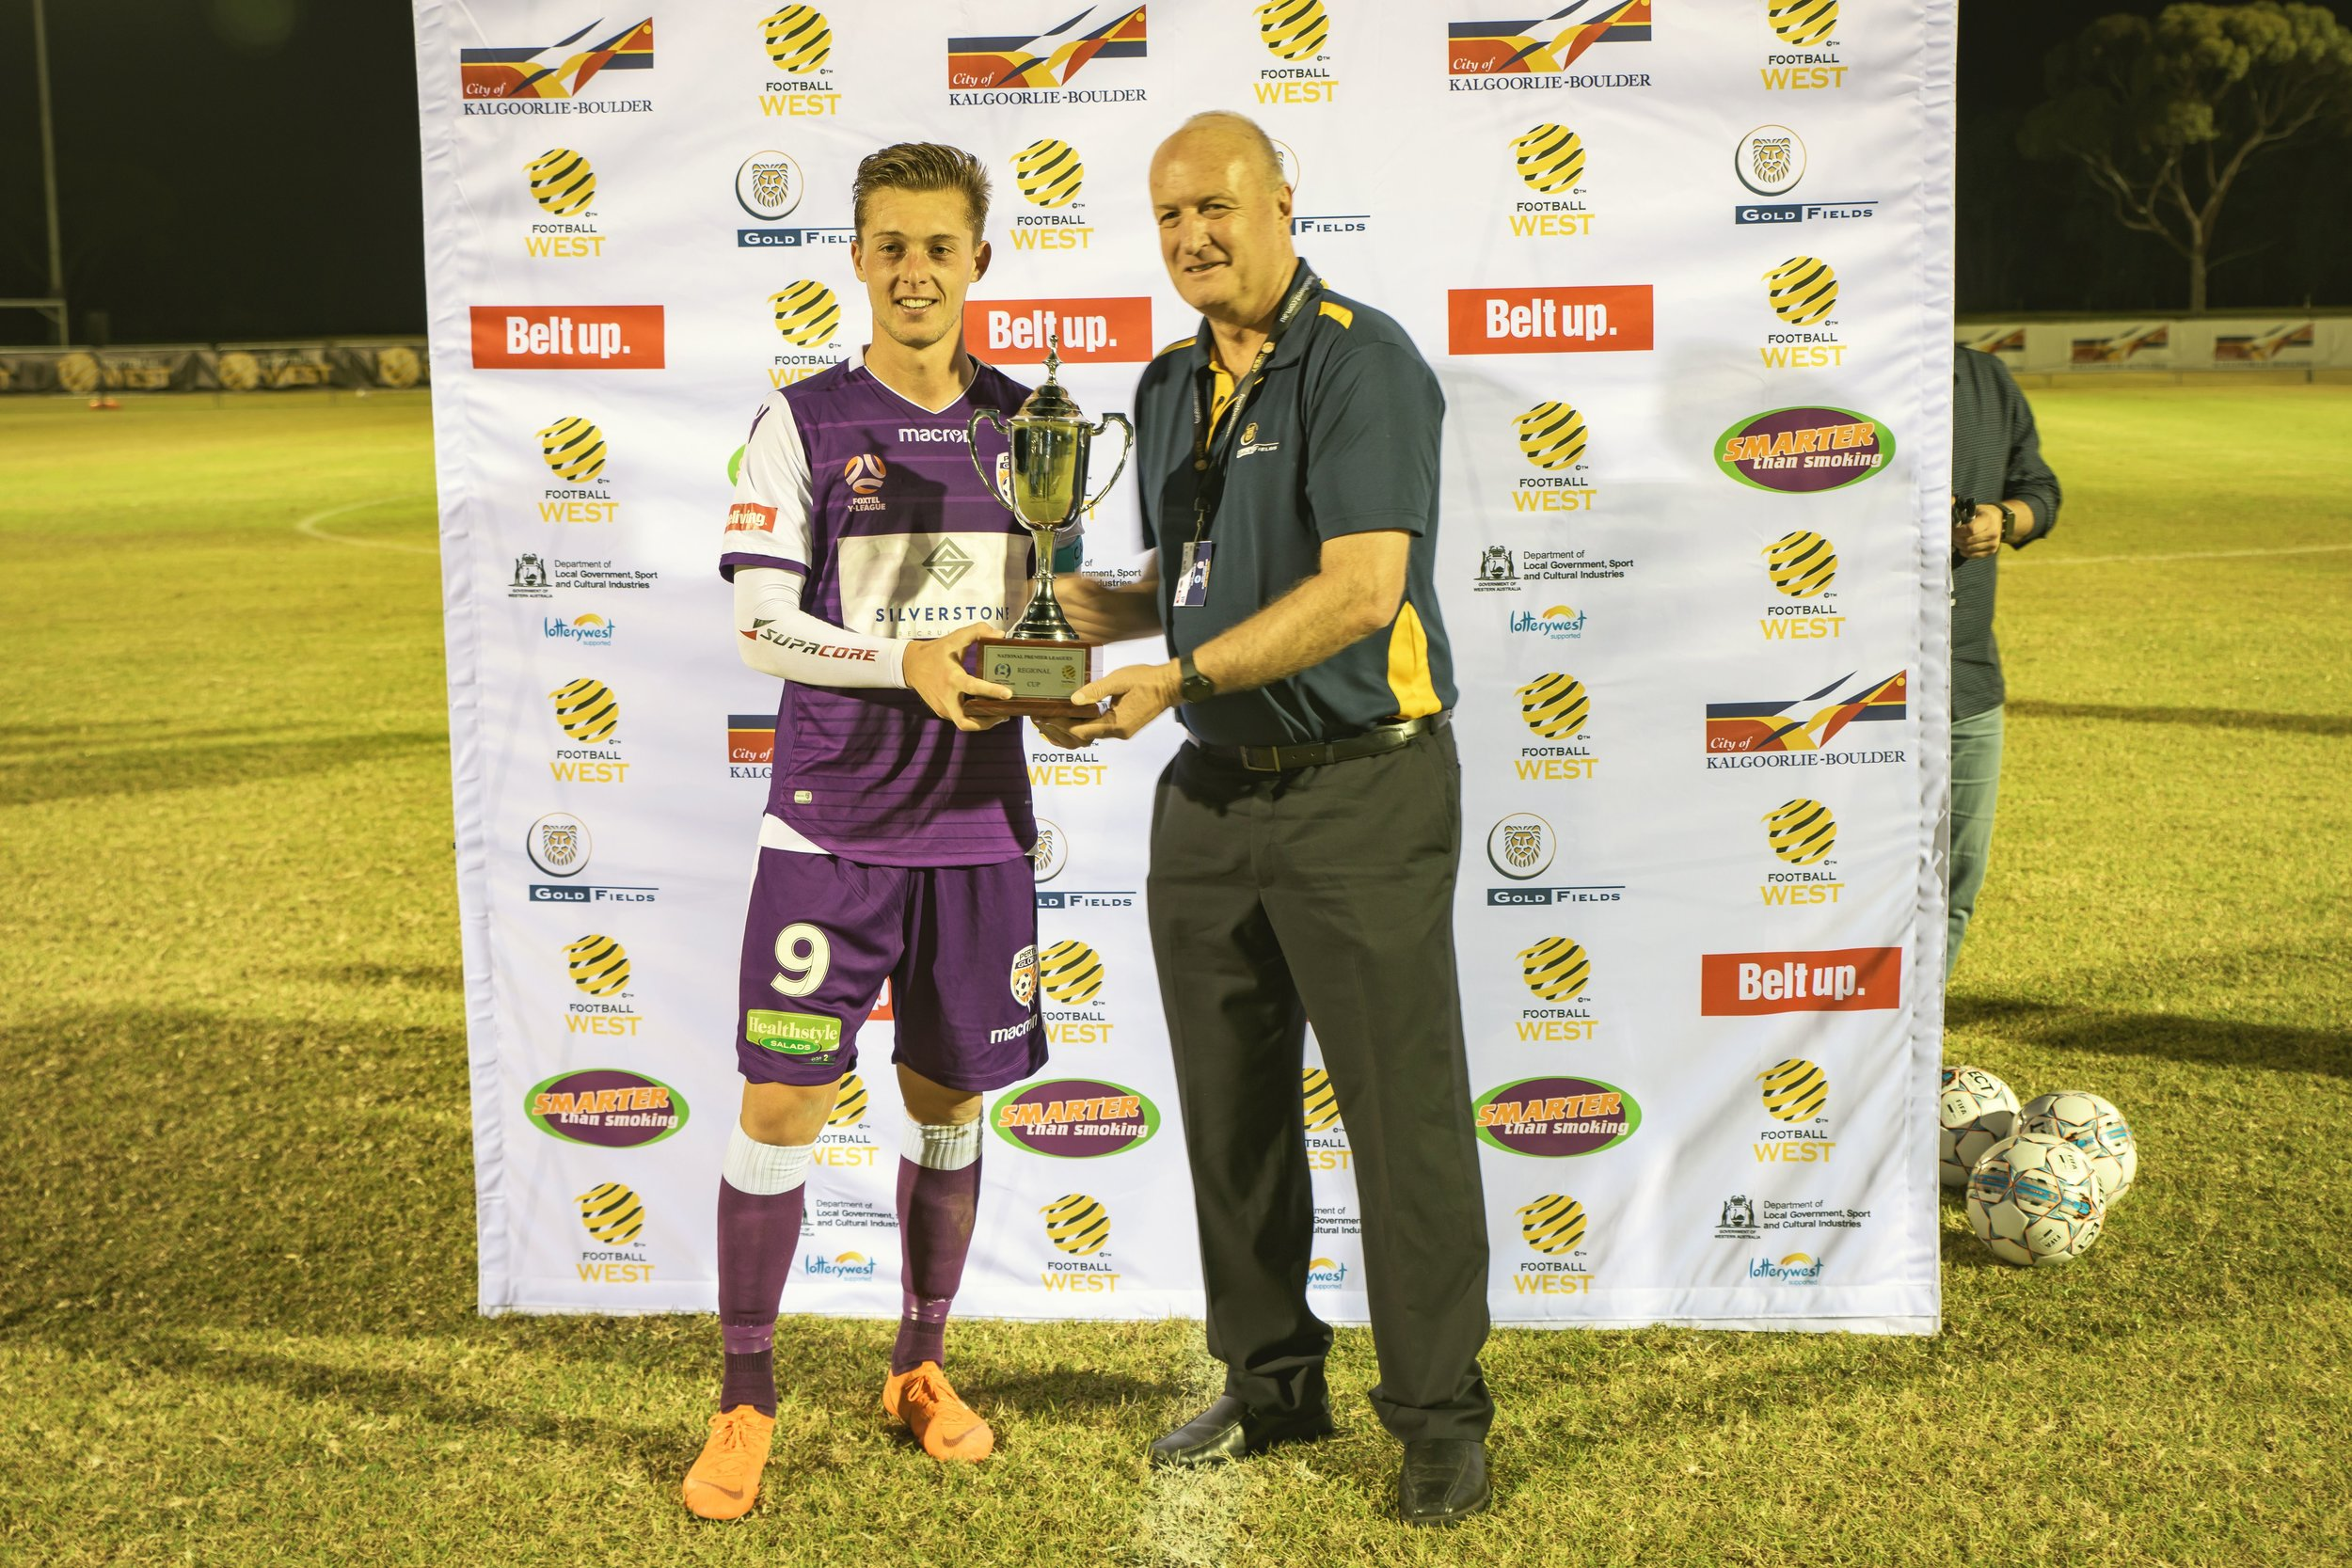 Gold Fields Executive Vice President (Australasia) Stuart Mathews presents the trophy to Perth Glory Youth's captain. Source: Football West